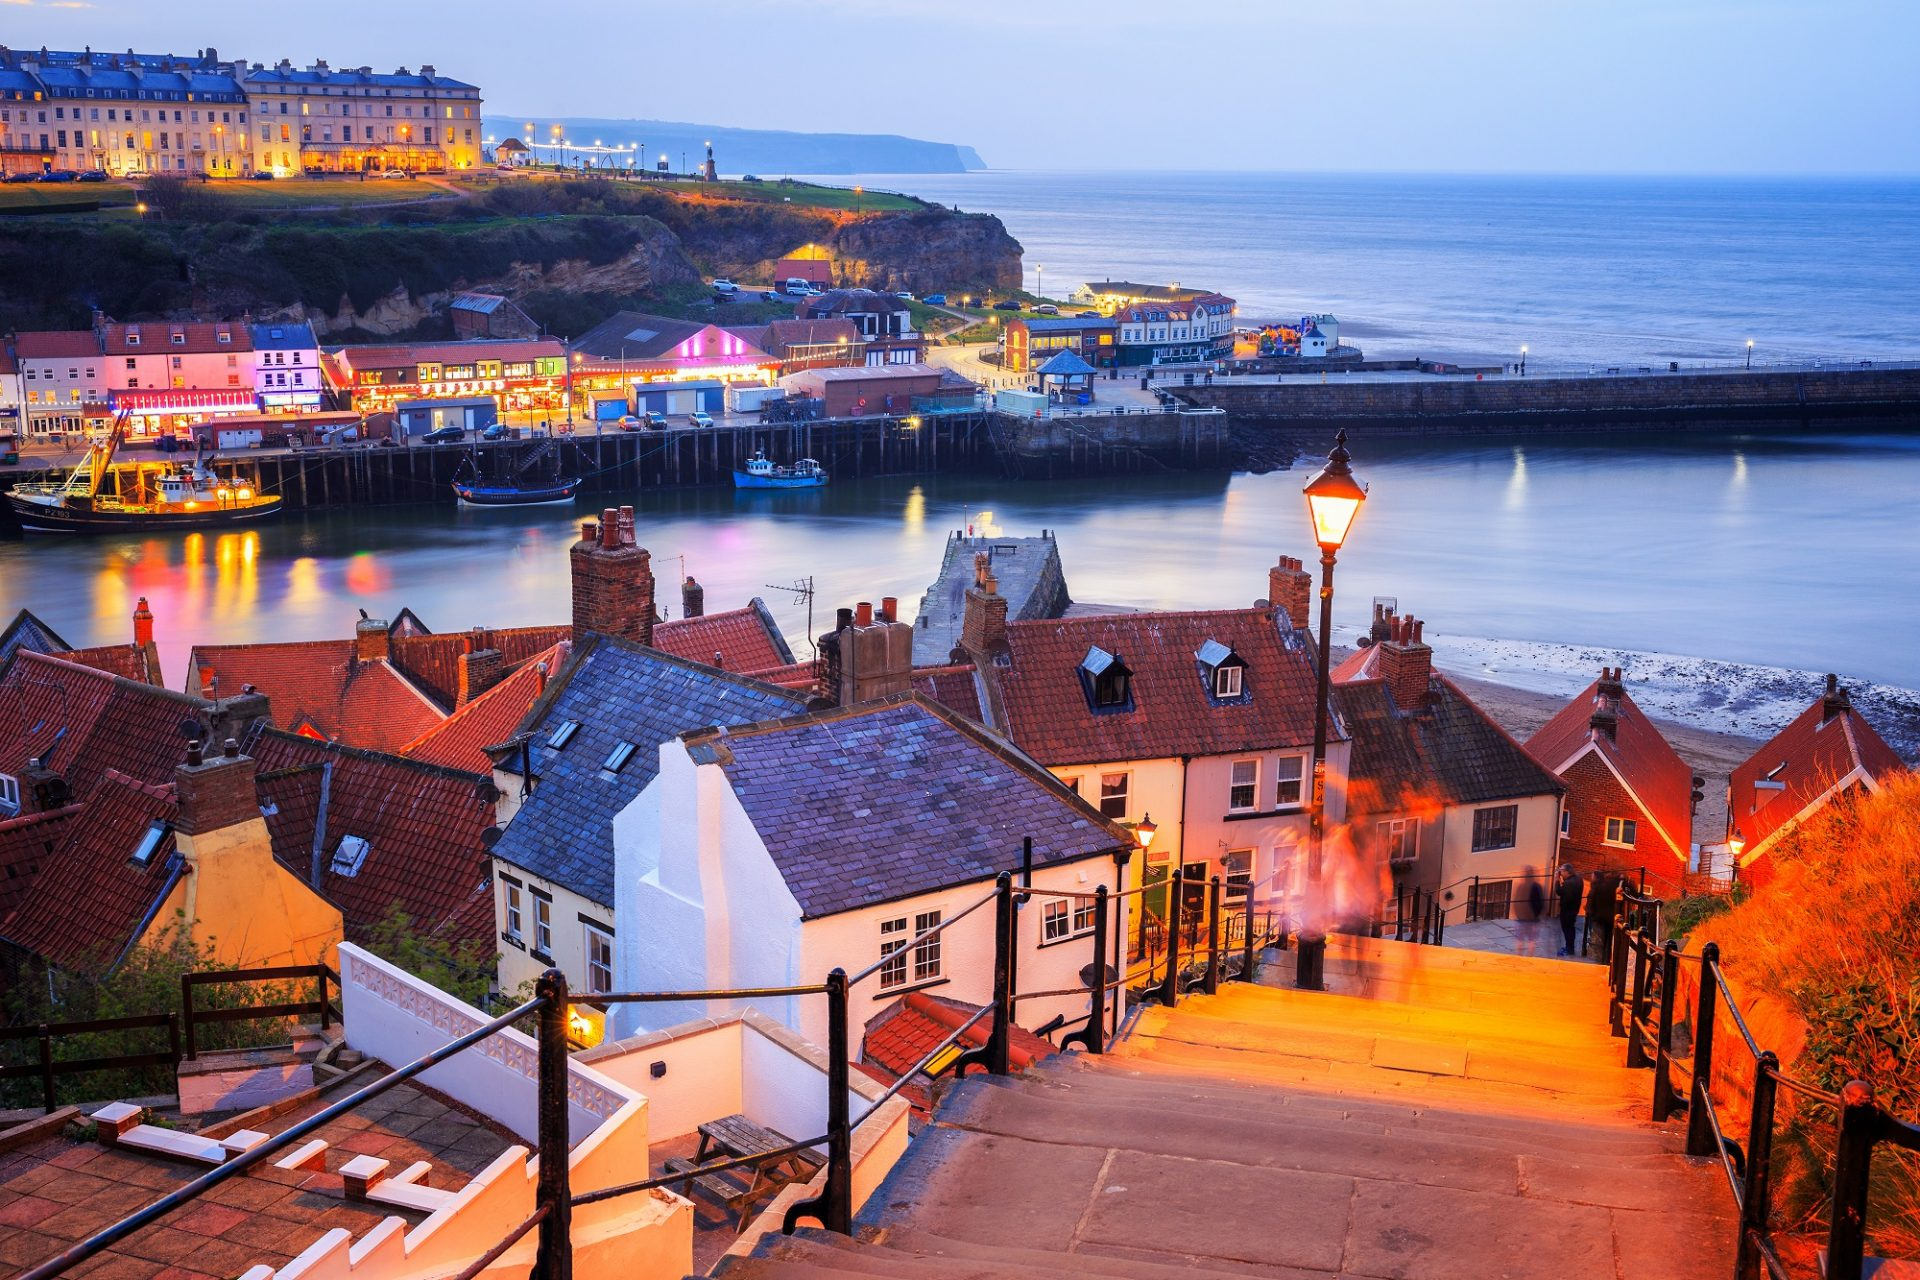 Blick auf Whitby am Abend